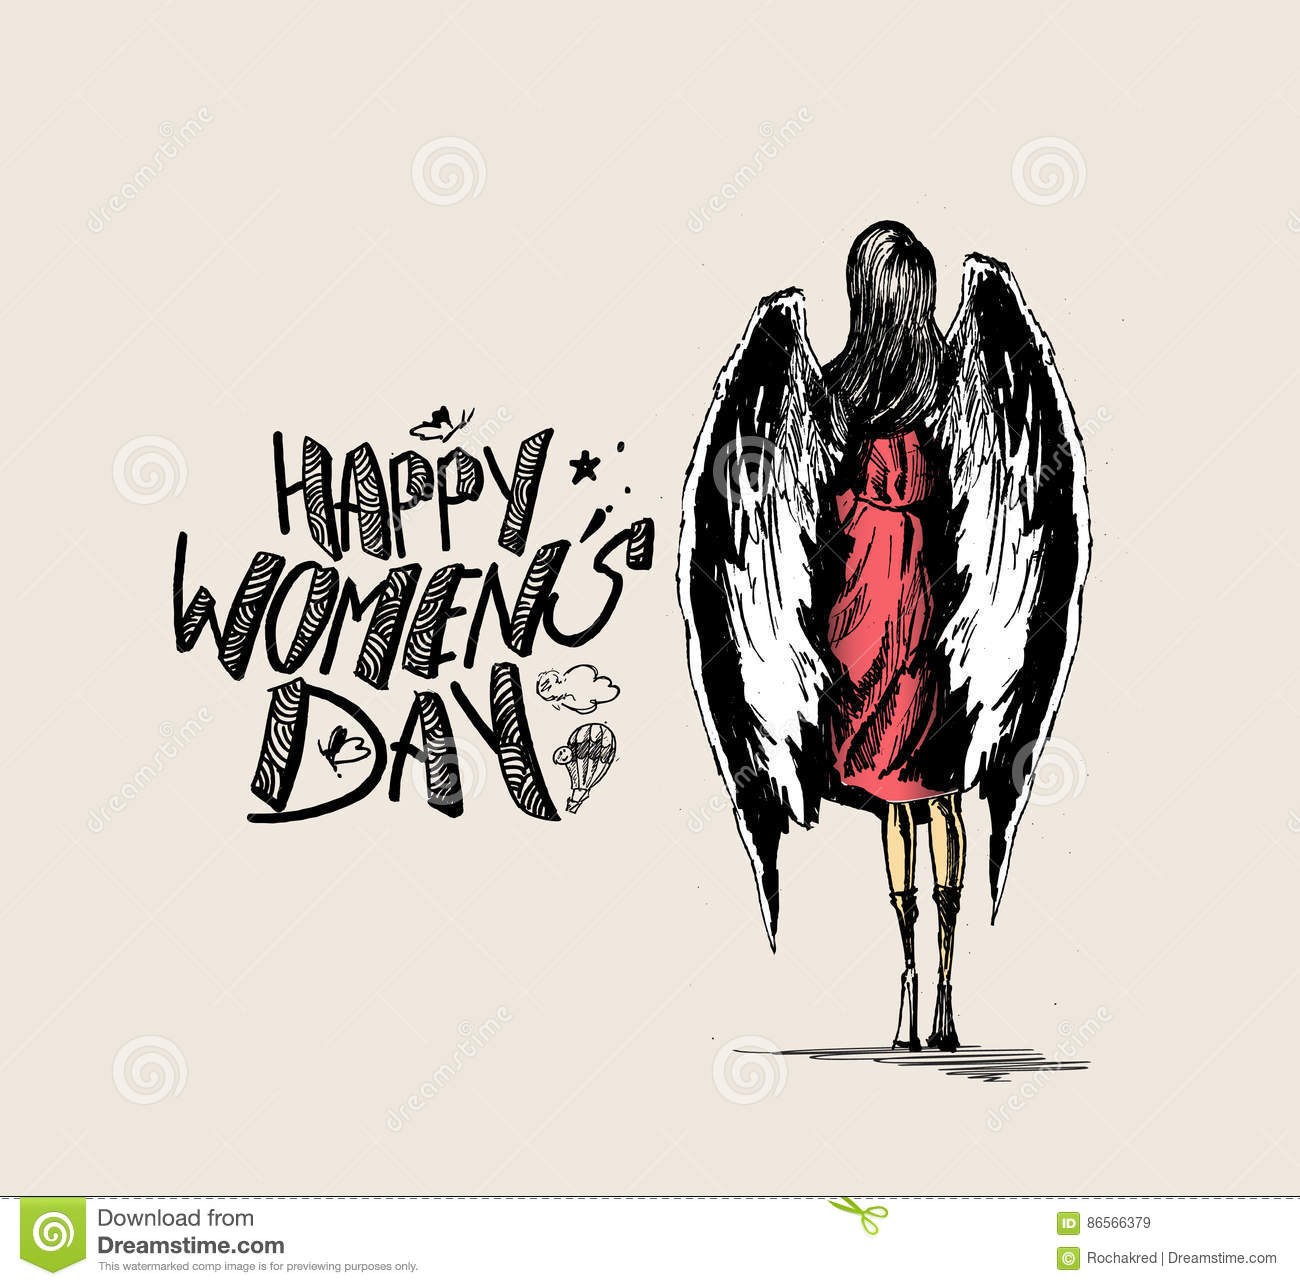 Happy Women`s Day, angel woman with wings